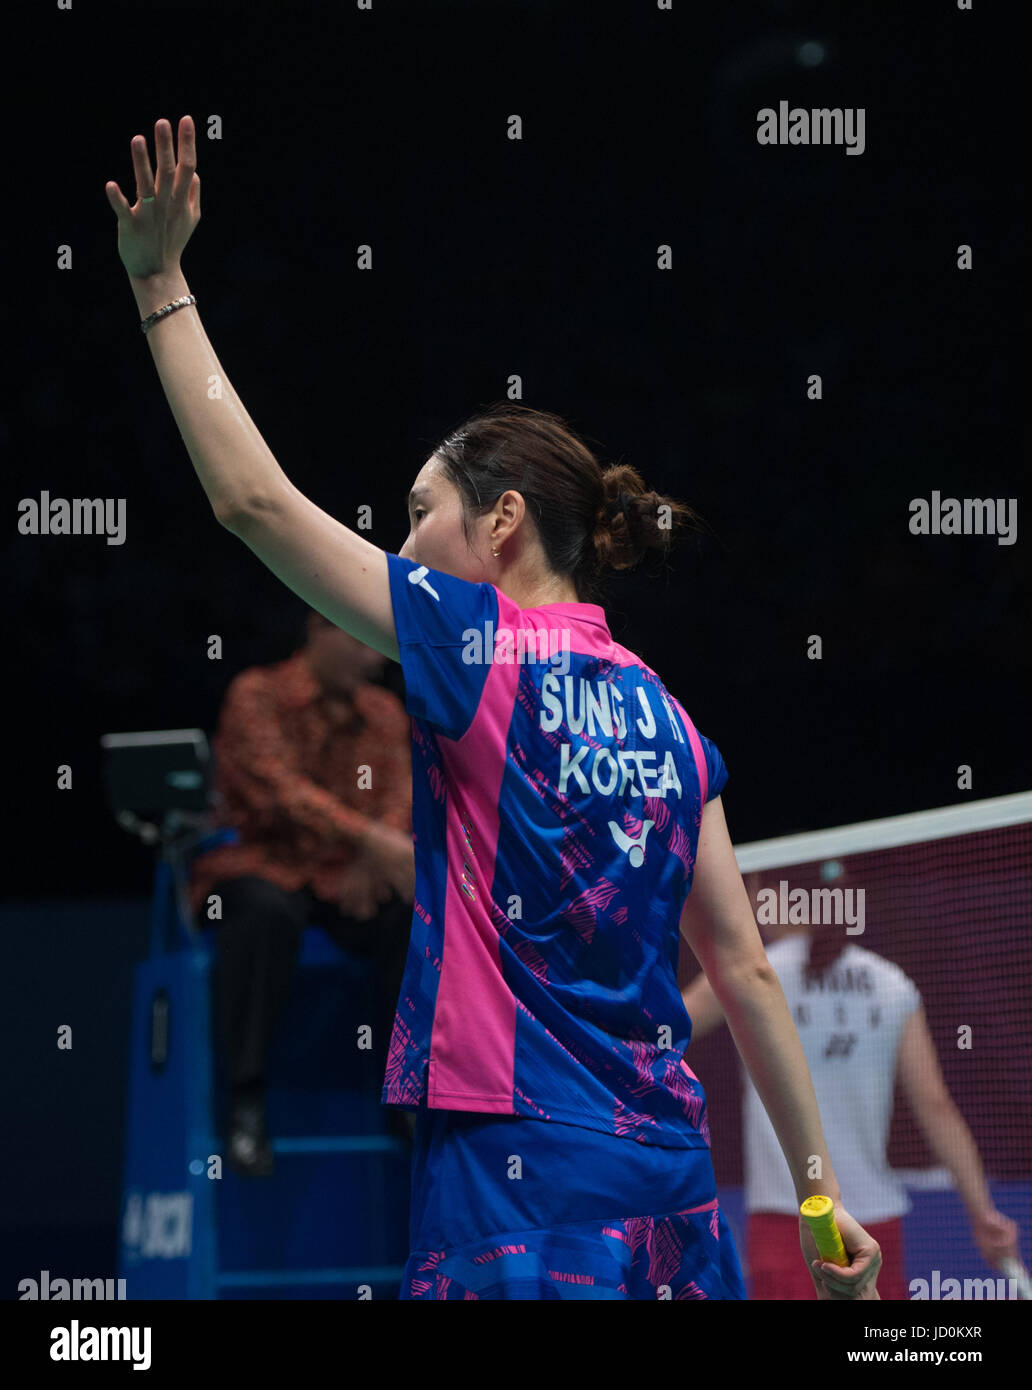 Jakarta Indonesia 17th June 2017 Sung Ji Hyun of South Korea